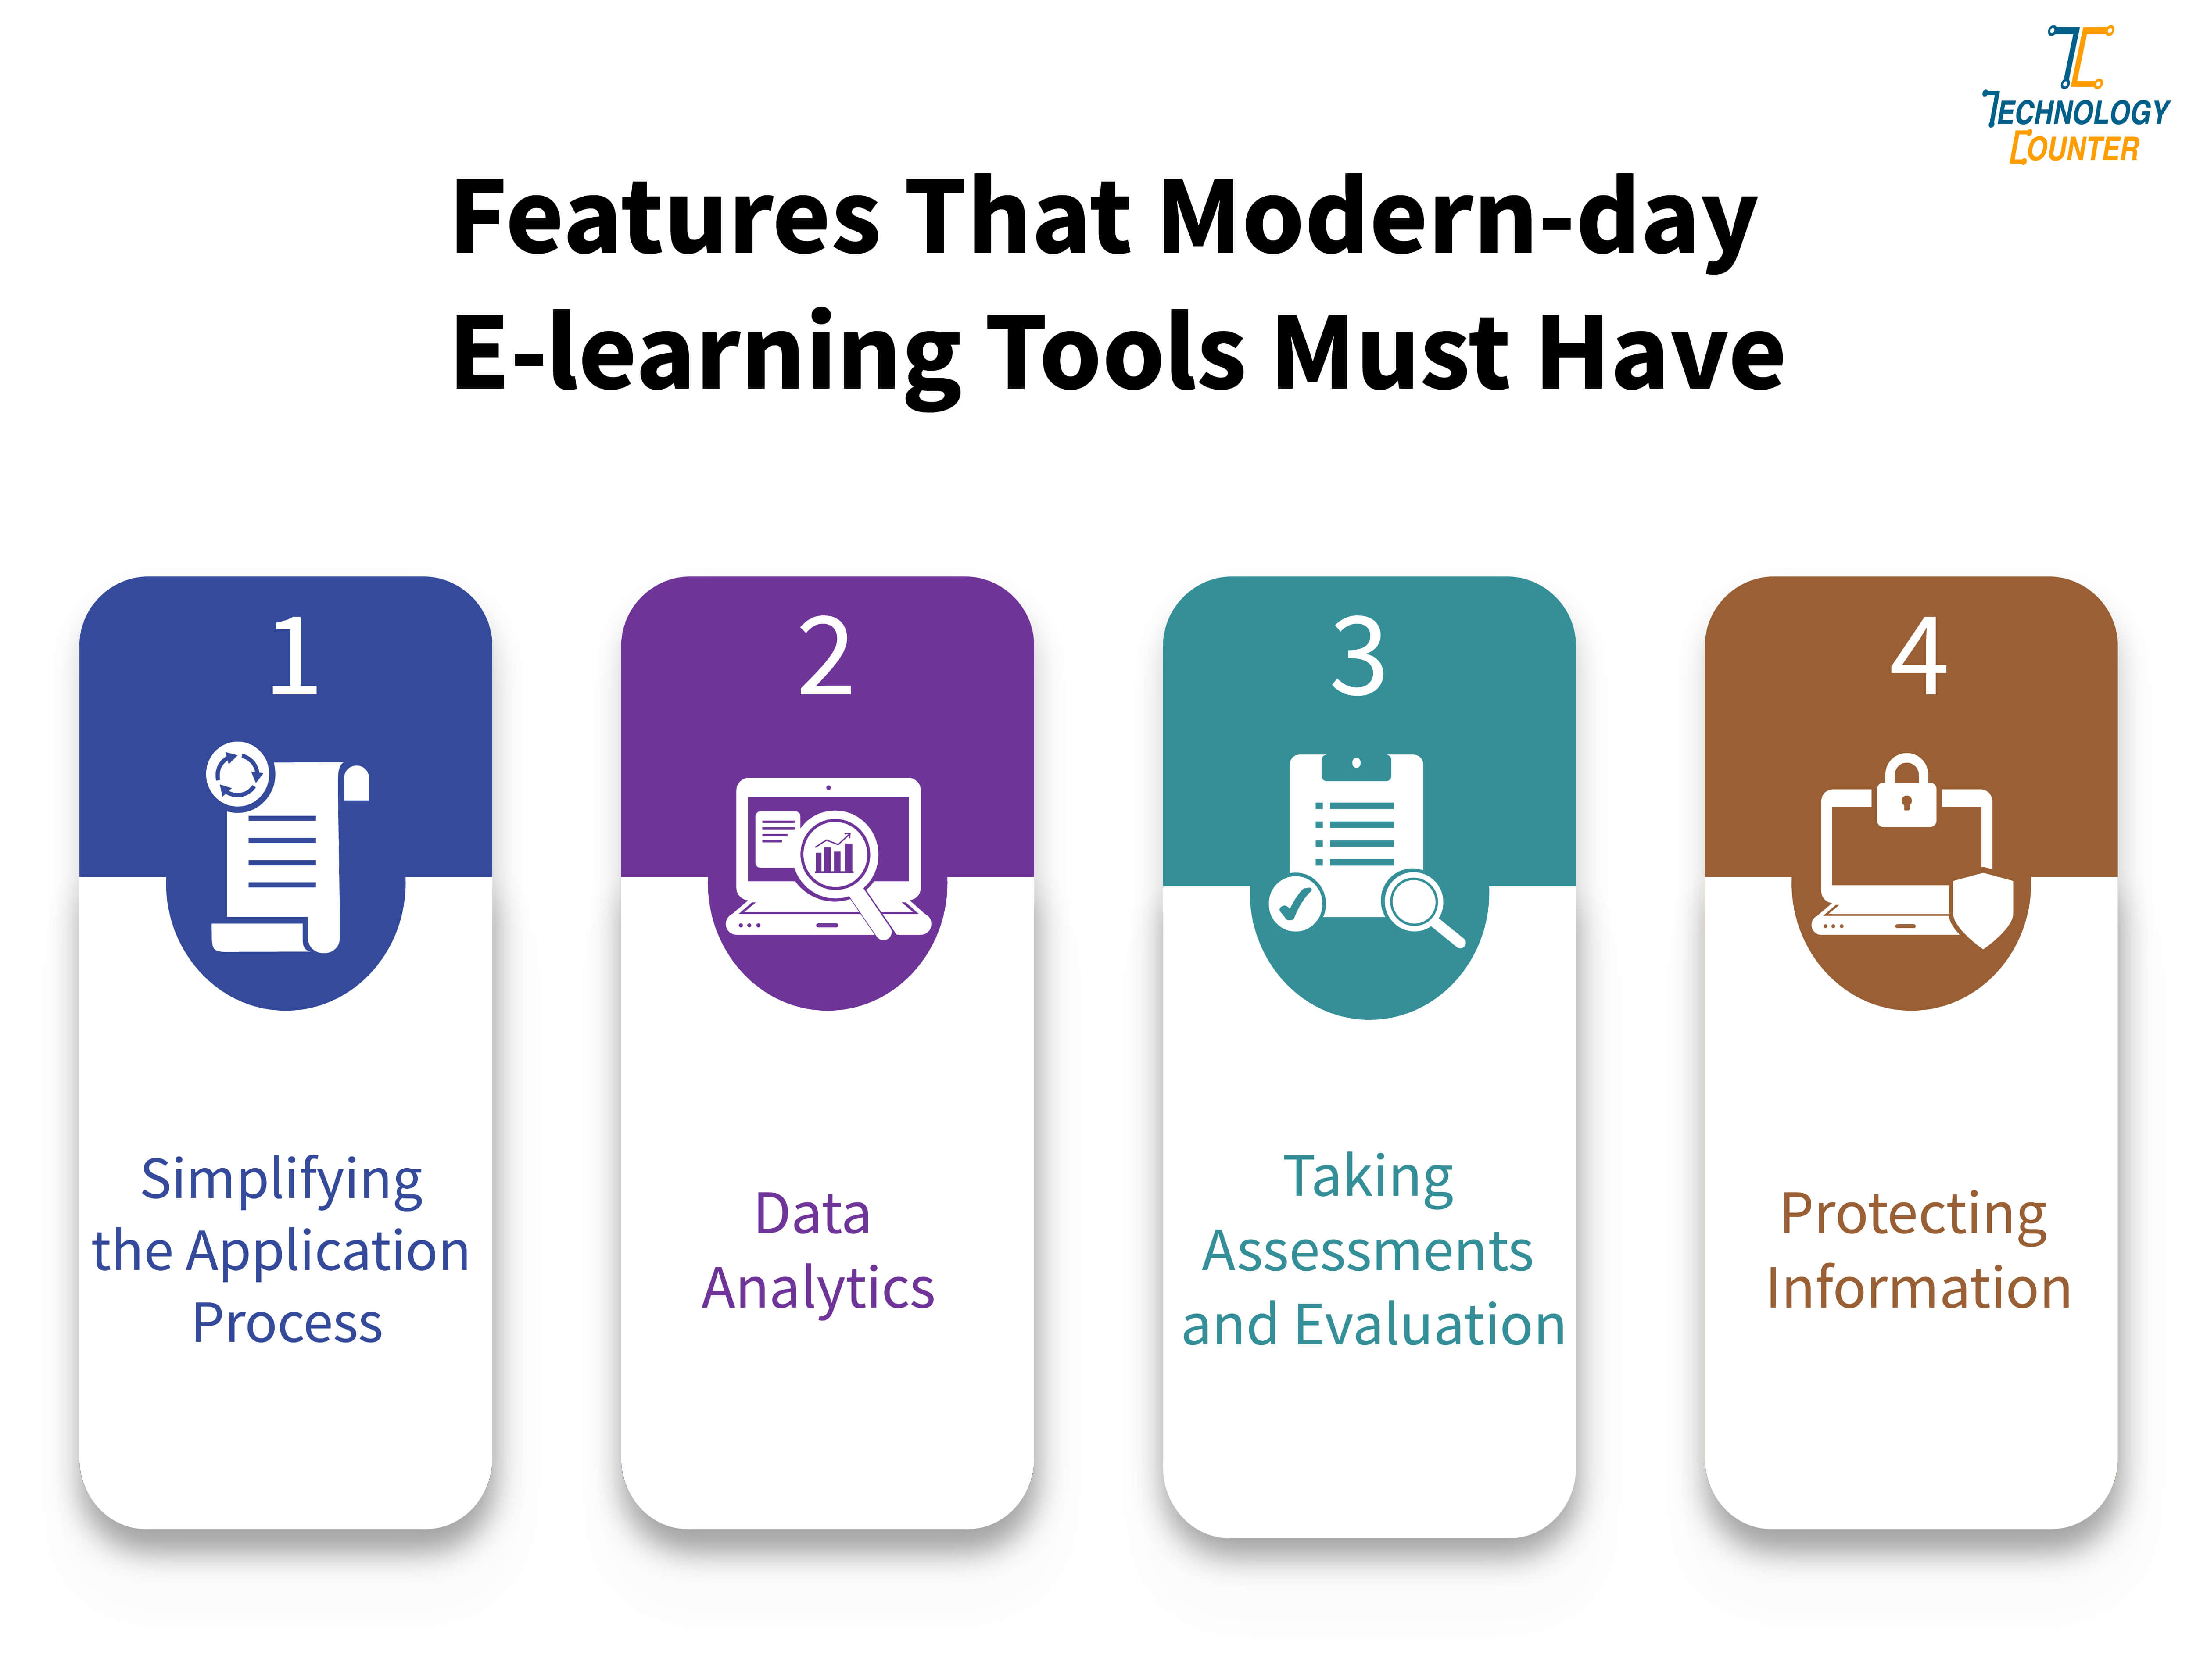 Features that modern-day e-learning tools must have